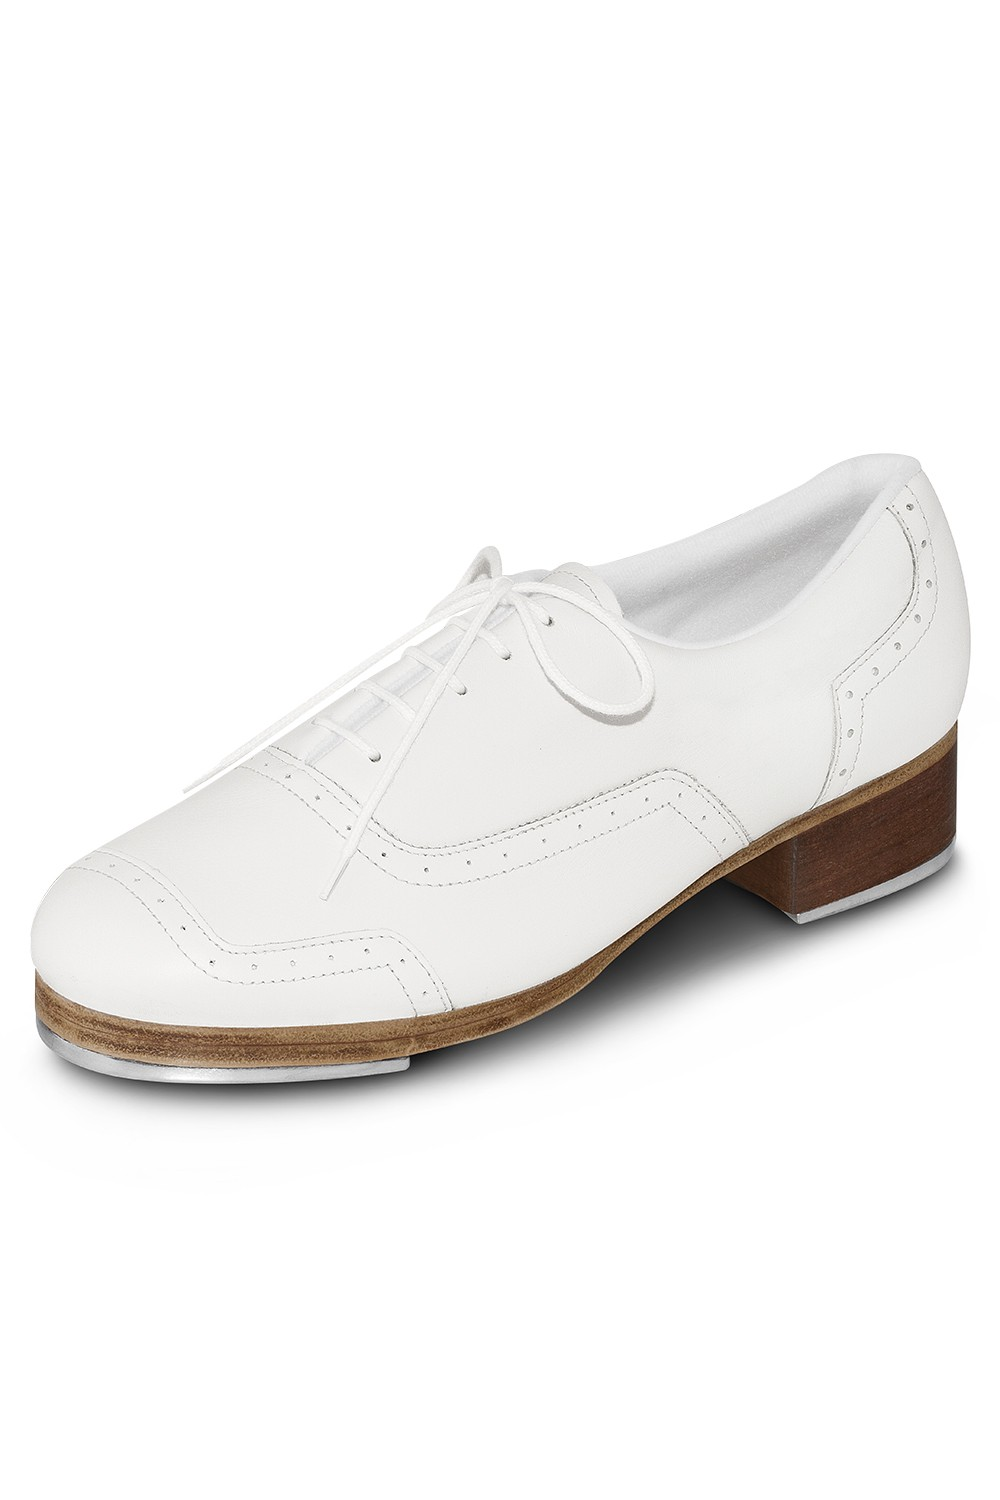 Jason Samuels Smith - Homme Men's Tap Shoes